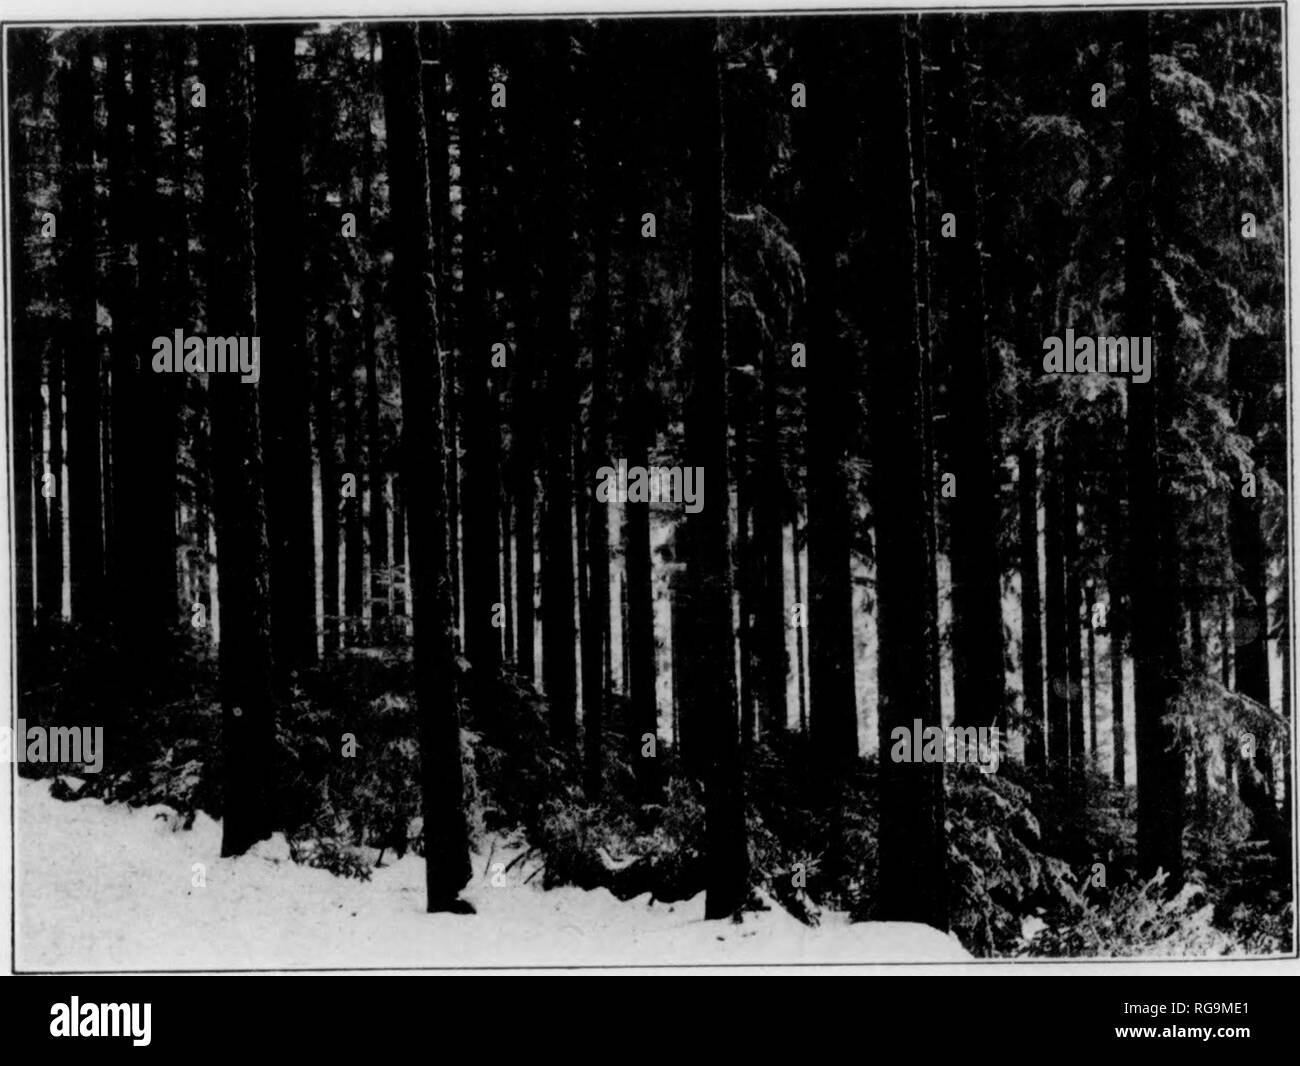 . Bulletin (Pennsylvania Department of Forestry), no. 11. Forests and forestry. Fig 1.-) NATURAL HKGKNKUATION OF THE FOREST. Norway Spruce before seeding cutting. Opening the leaf-canopy stimulates seed production.. Fig. 16. NATURAL REGENERATION OF THE FOREST. Norway Spruce after seeding cutting. Regeneration following regulated seed pro- duction . i m I. Please note that these images are extracted from scanned page images that may have been digitally enhanced for readability - coloration and appearance of these illustrations may not perfectly resemble the original work.. Pennsylvania. Dept. o - Stock Image